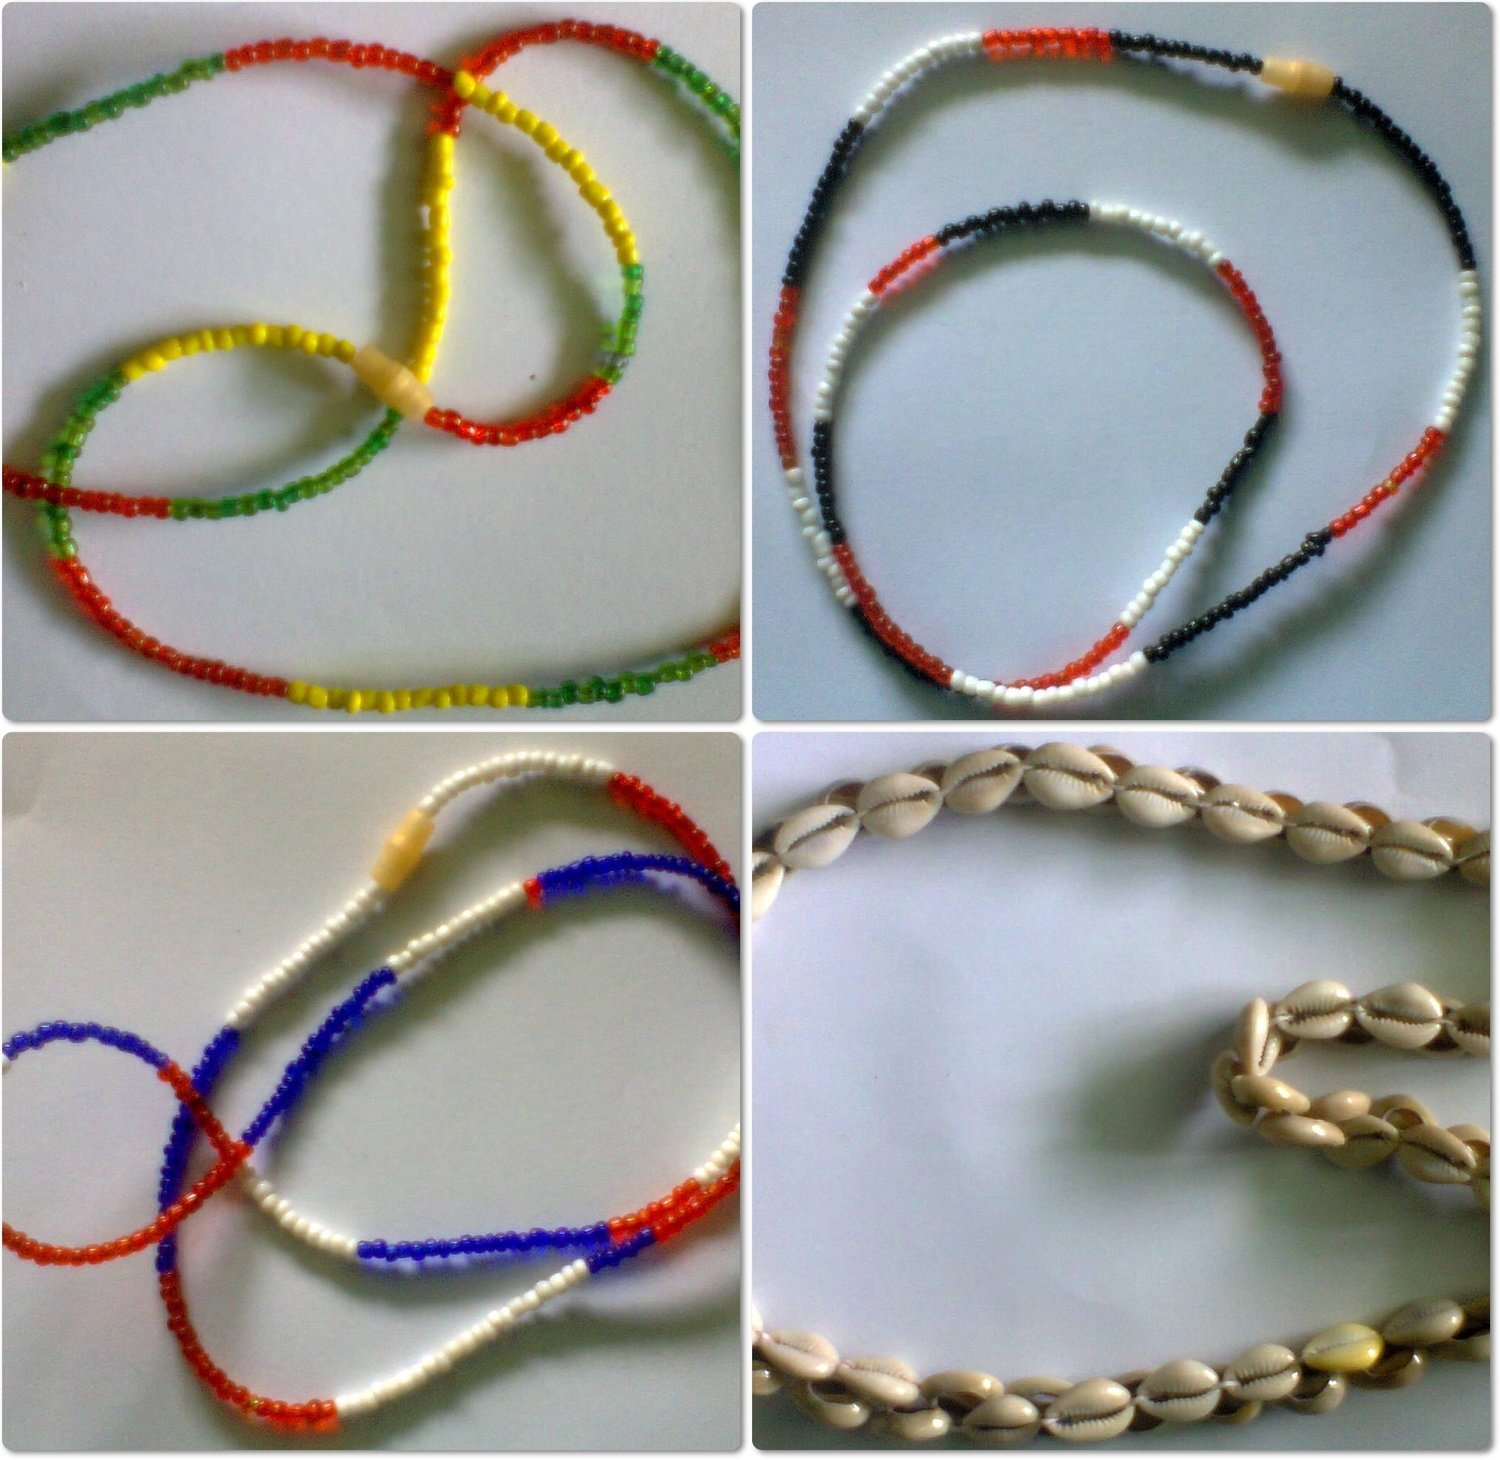 4 pieces Masai beads necklaces-MBN010